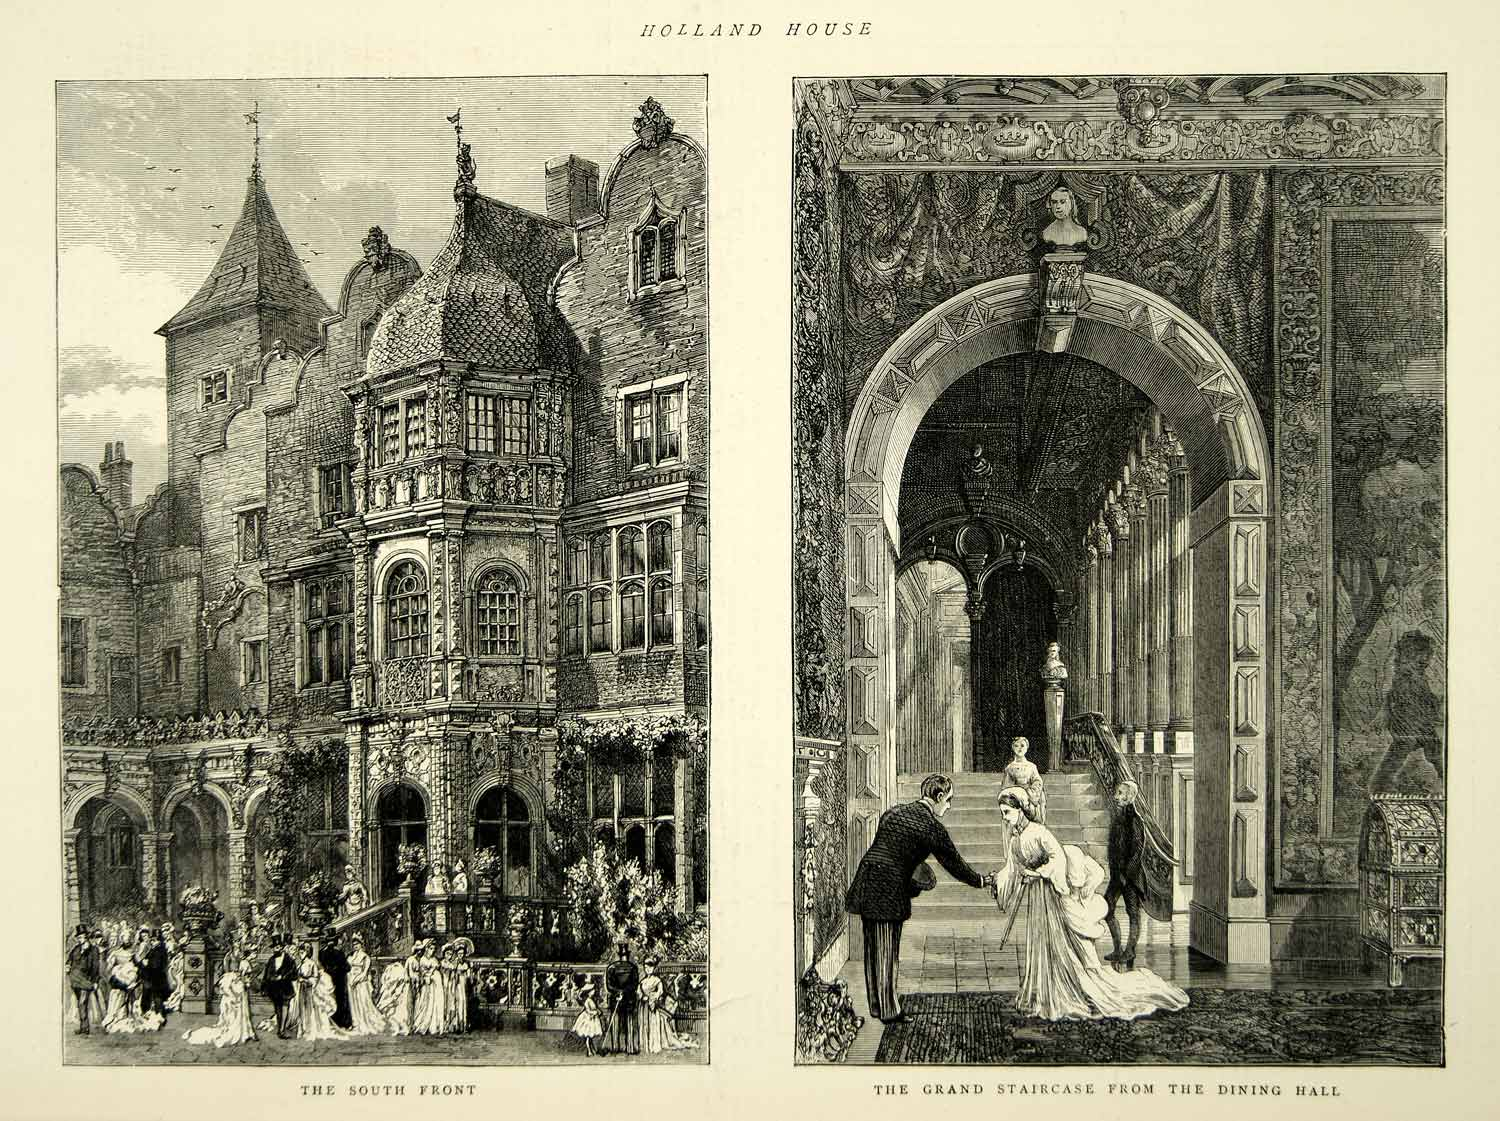 1872 Wood Engraving Art Holland House Grand Staircase Dining Hall London YTG4